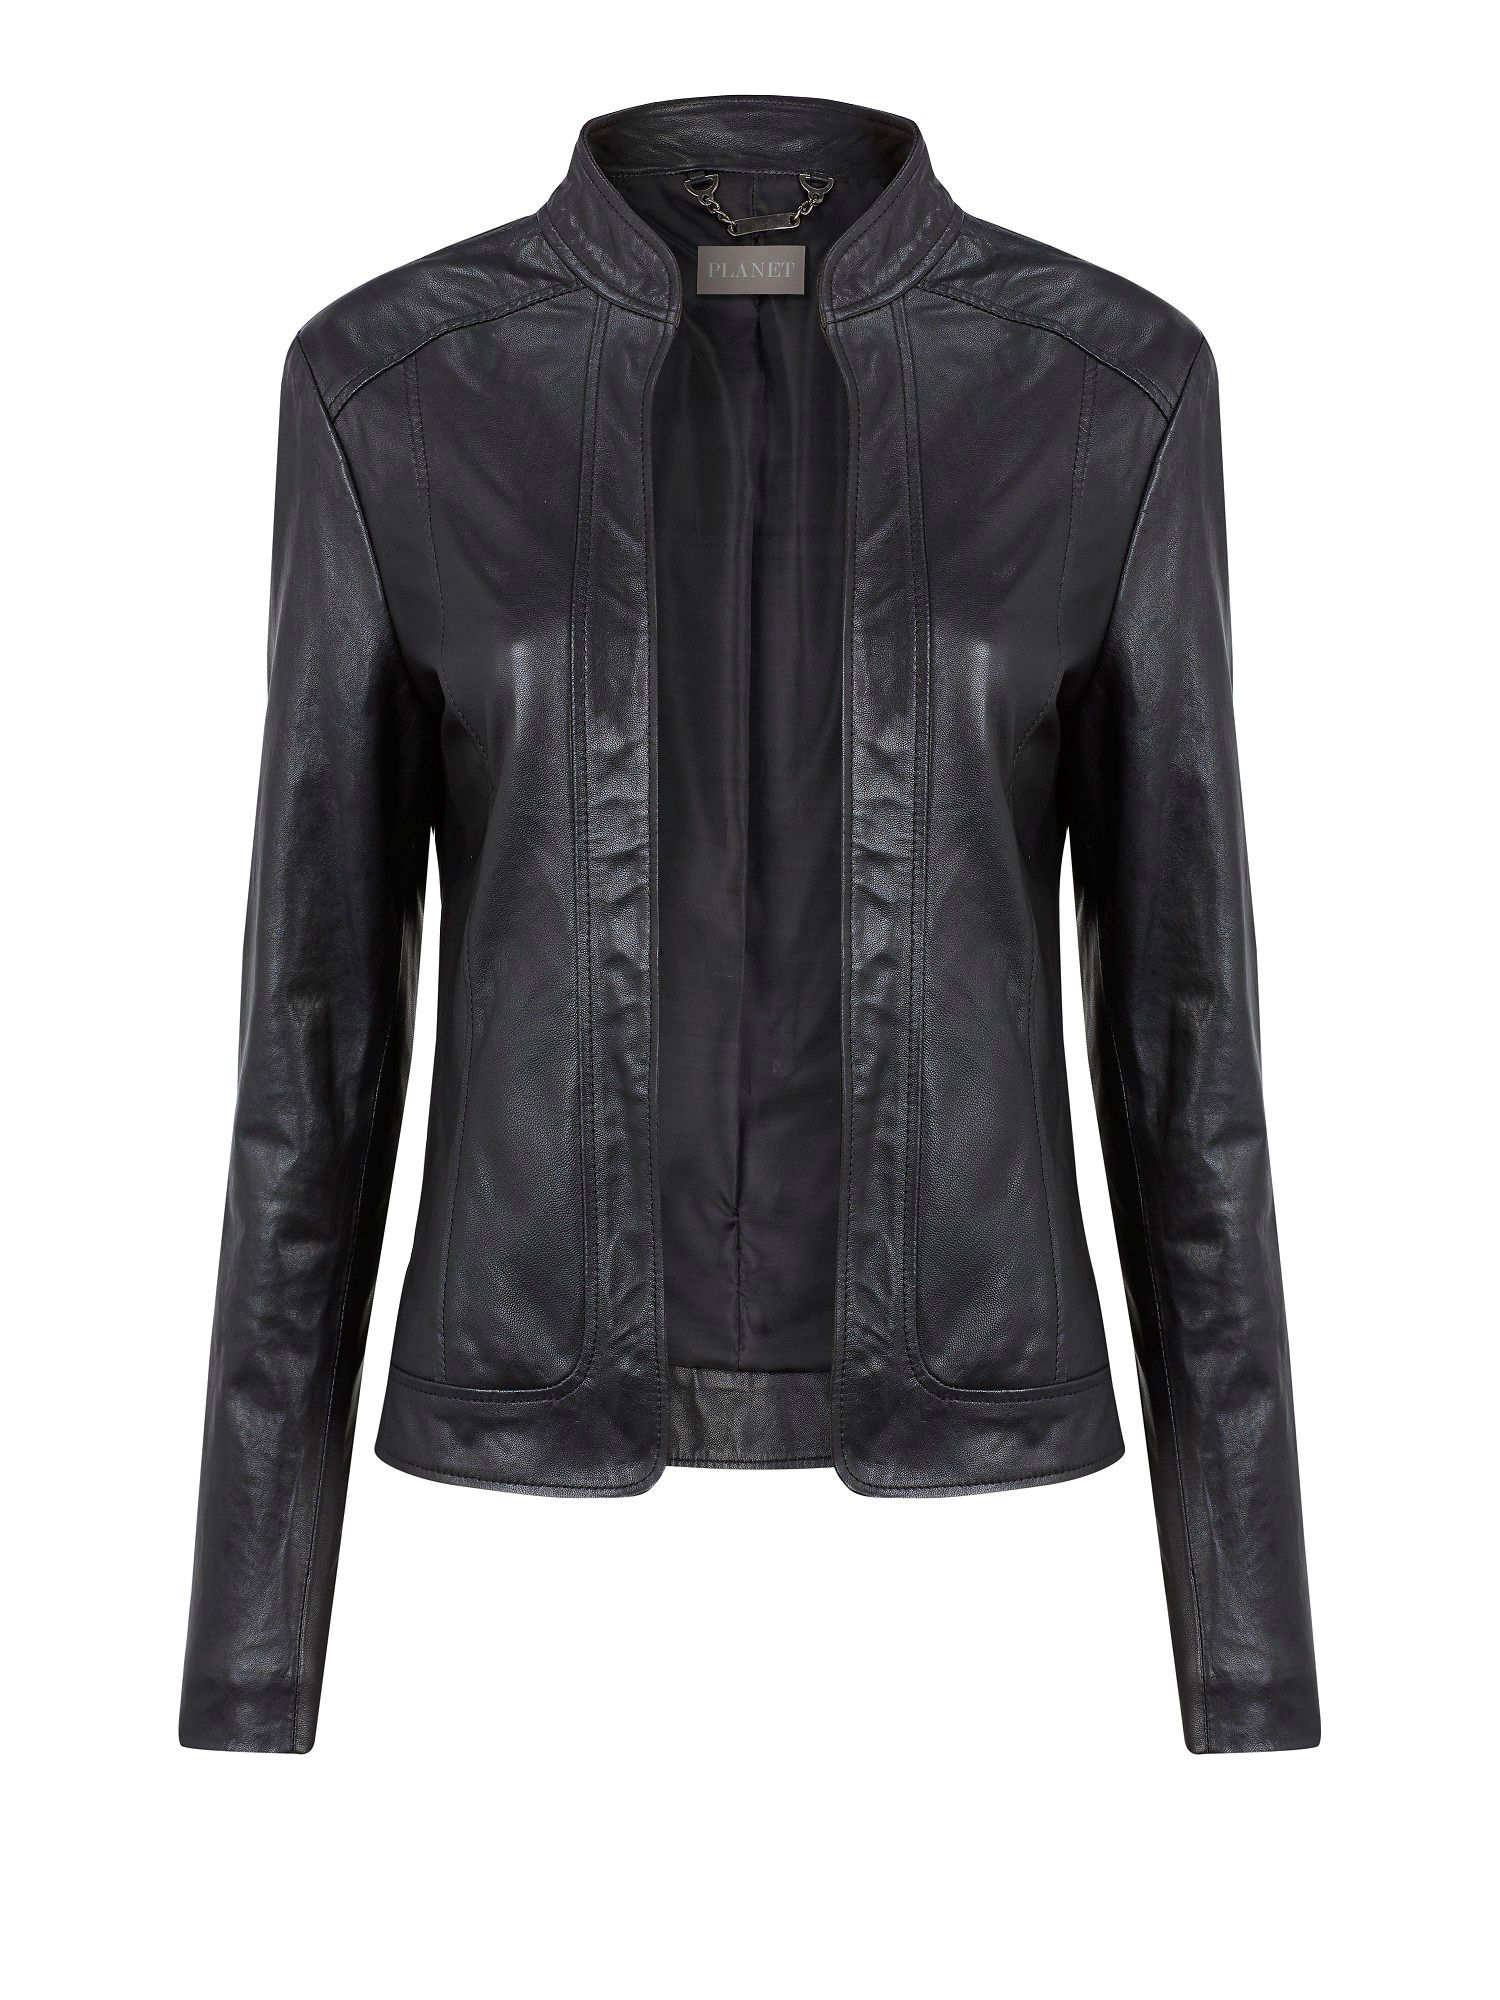 Edge to Edge Leather Jacket